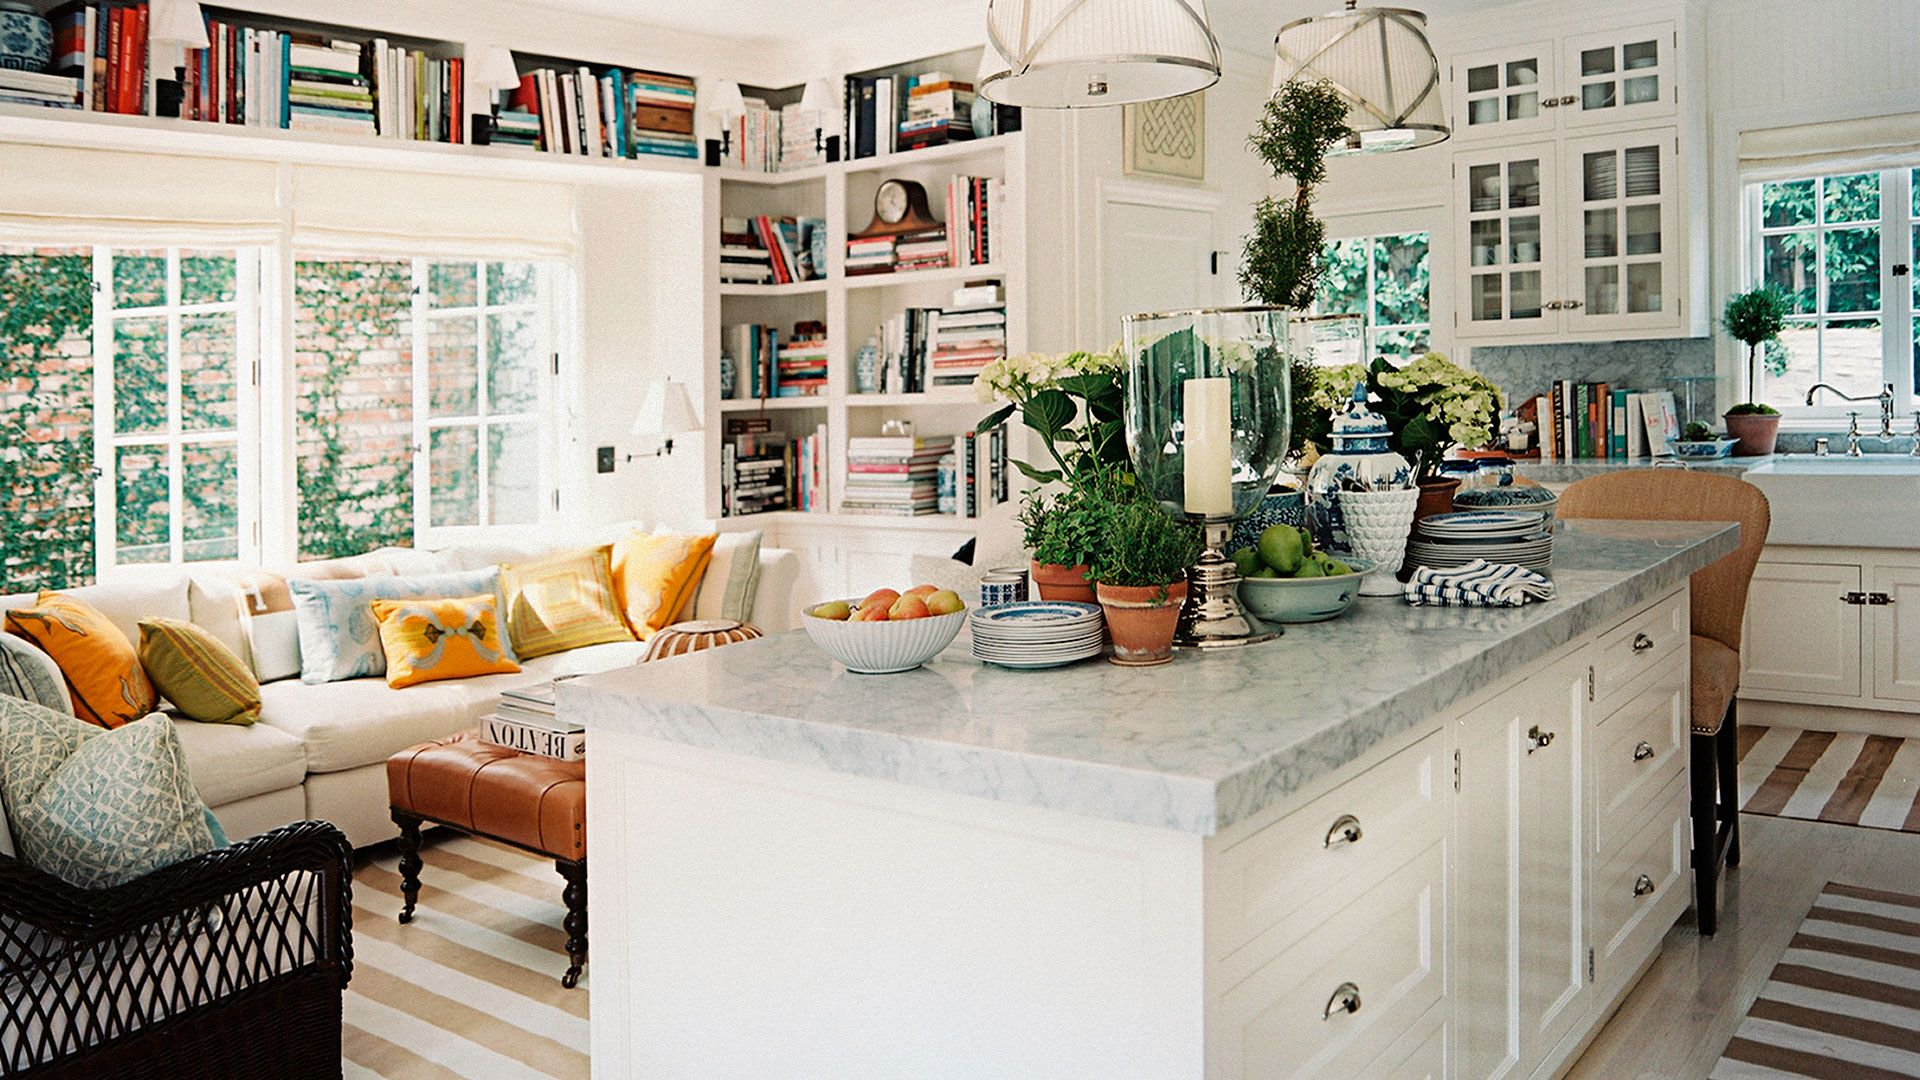 chic kitchen decor